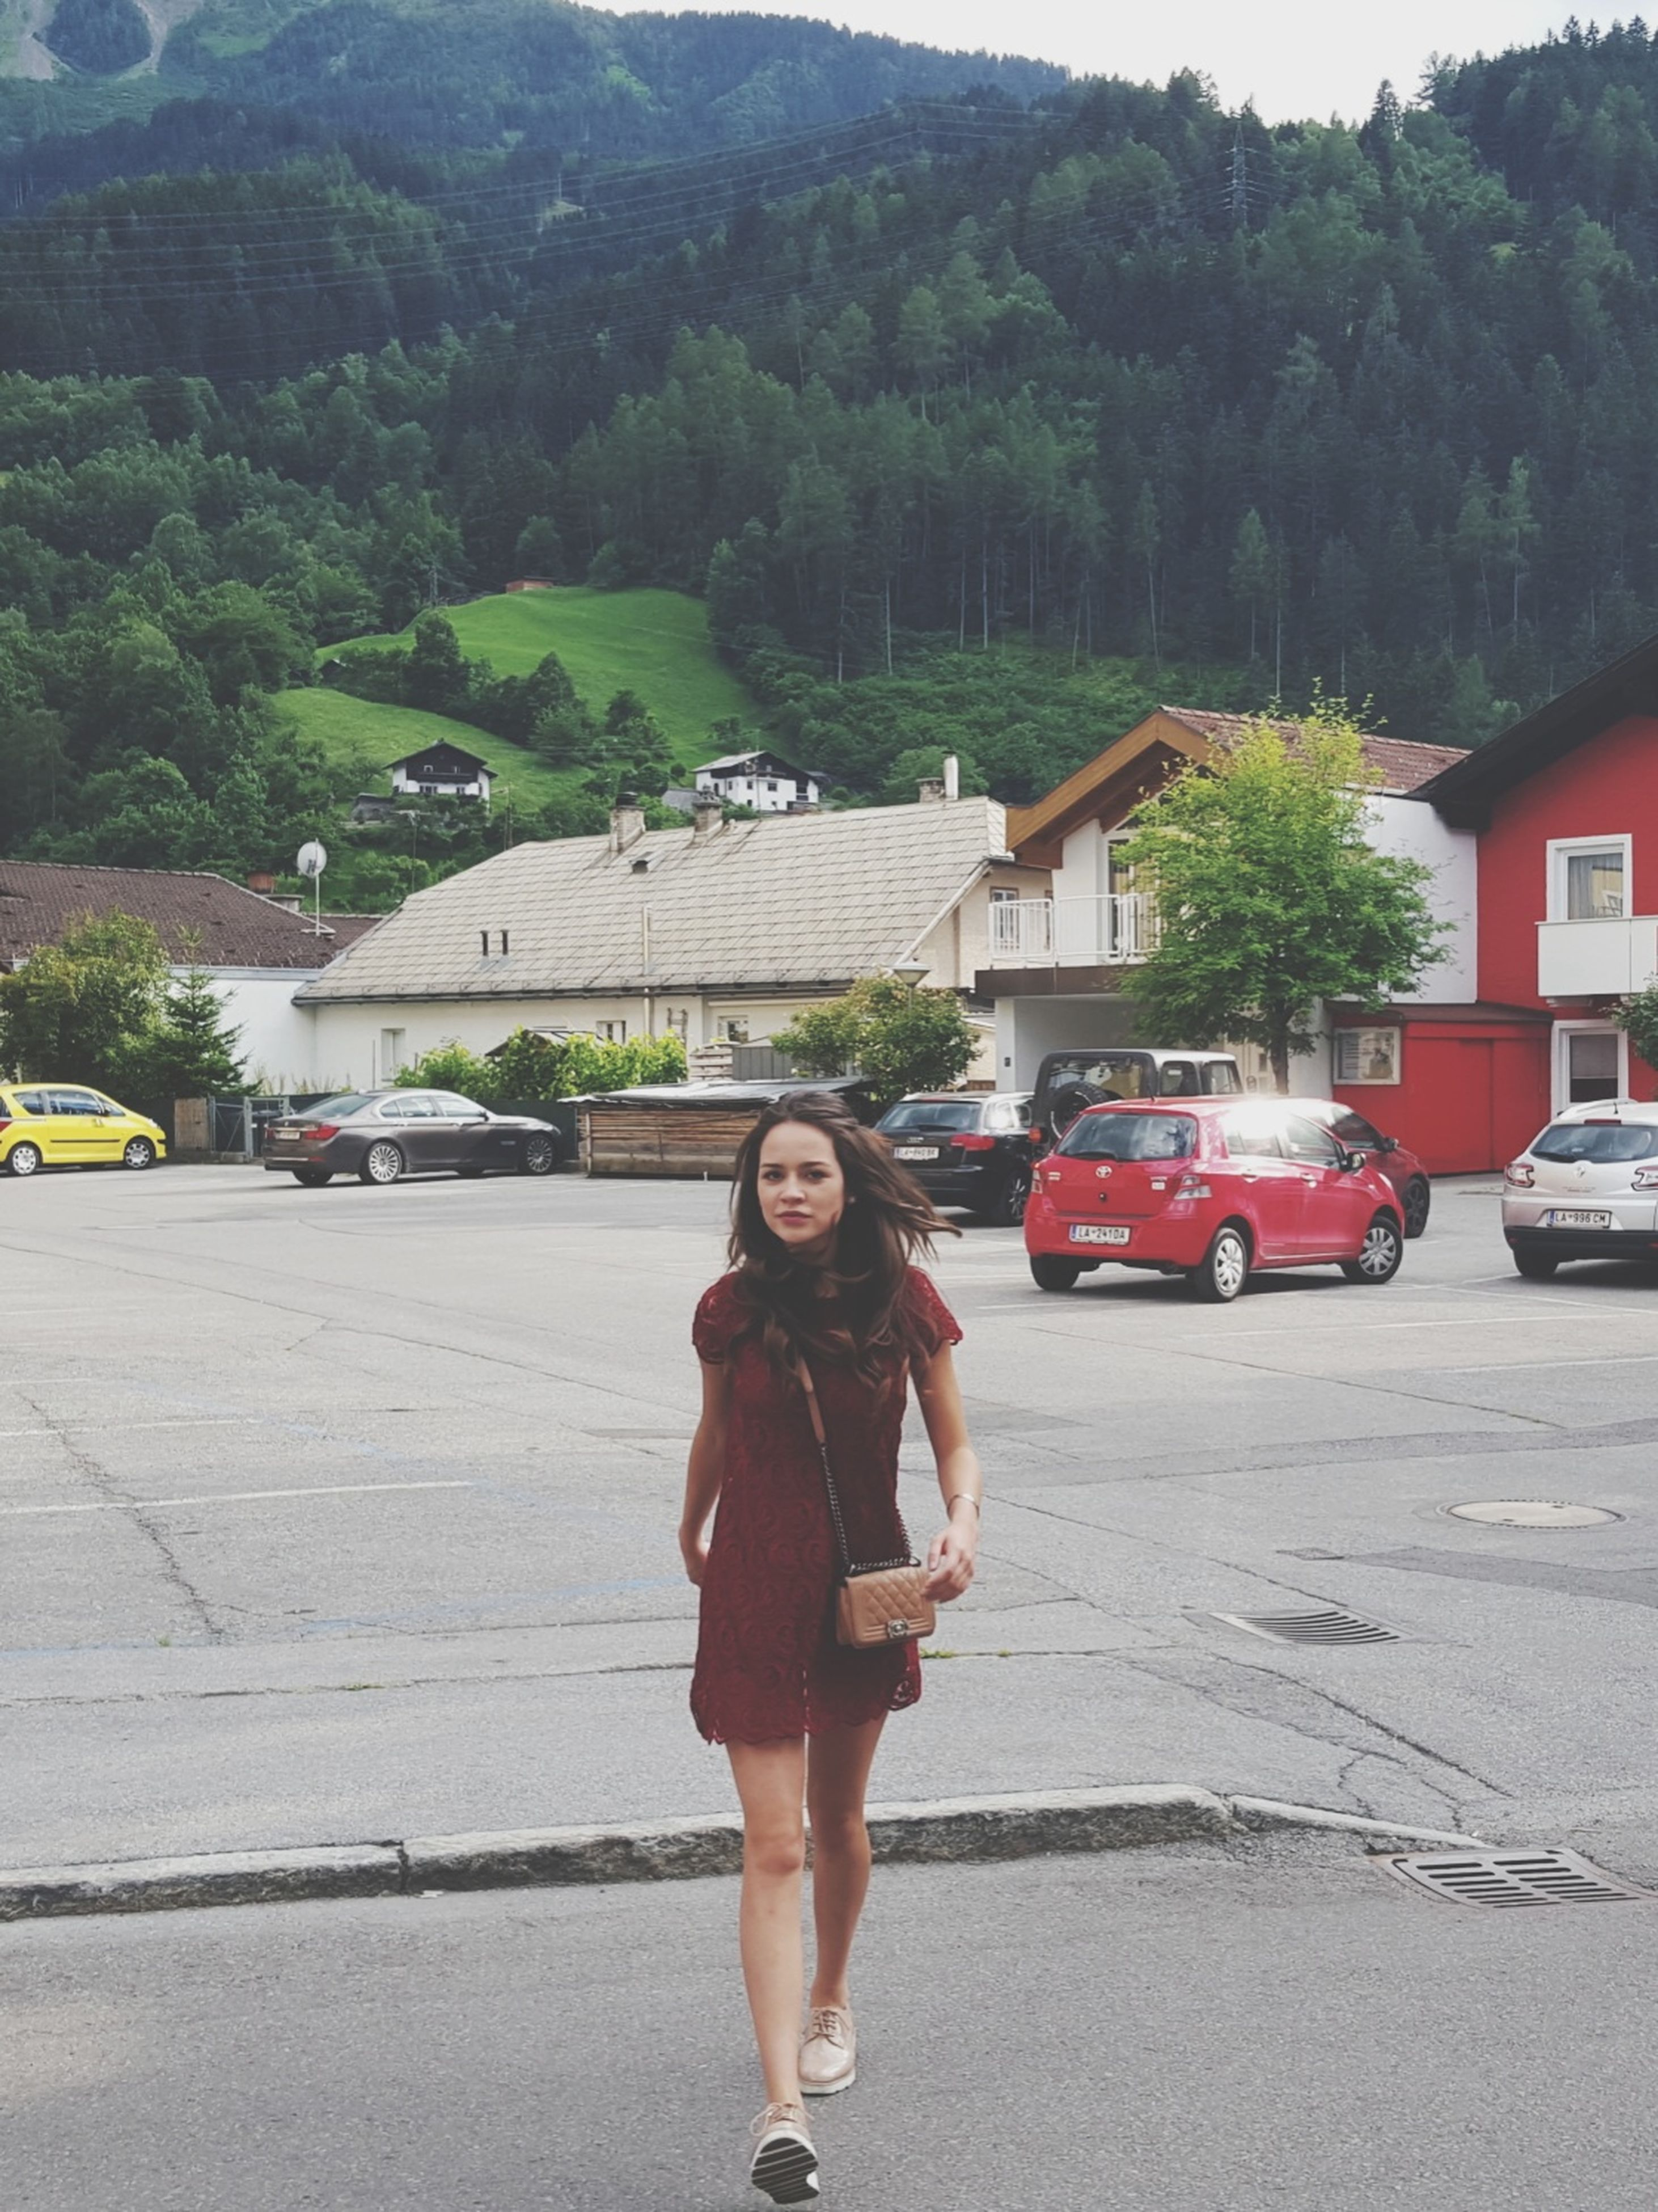 full length, architecture, street, young adult, leisure activity, young women, casual clothing, smiling, lifestyles, built structure, person, building exterior, standing, front view, car, long hair, portrait, tree, mountain, in front of, medium-length hair, day, outdoors